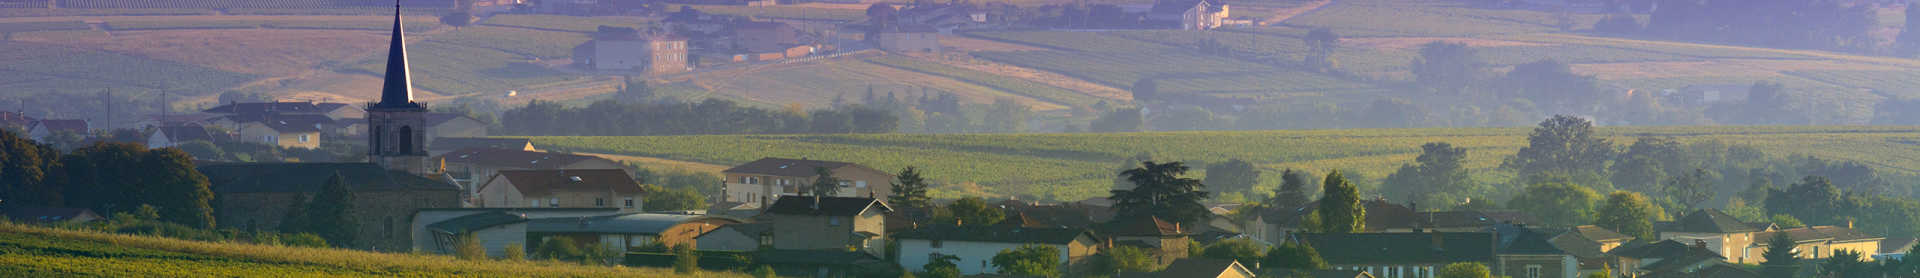 Image for Morey-St-Denis Wine Burgundy, France content section